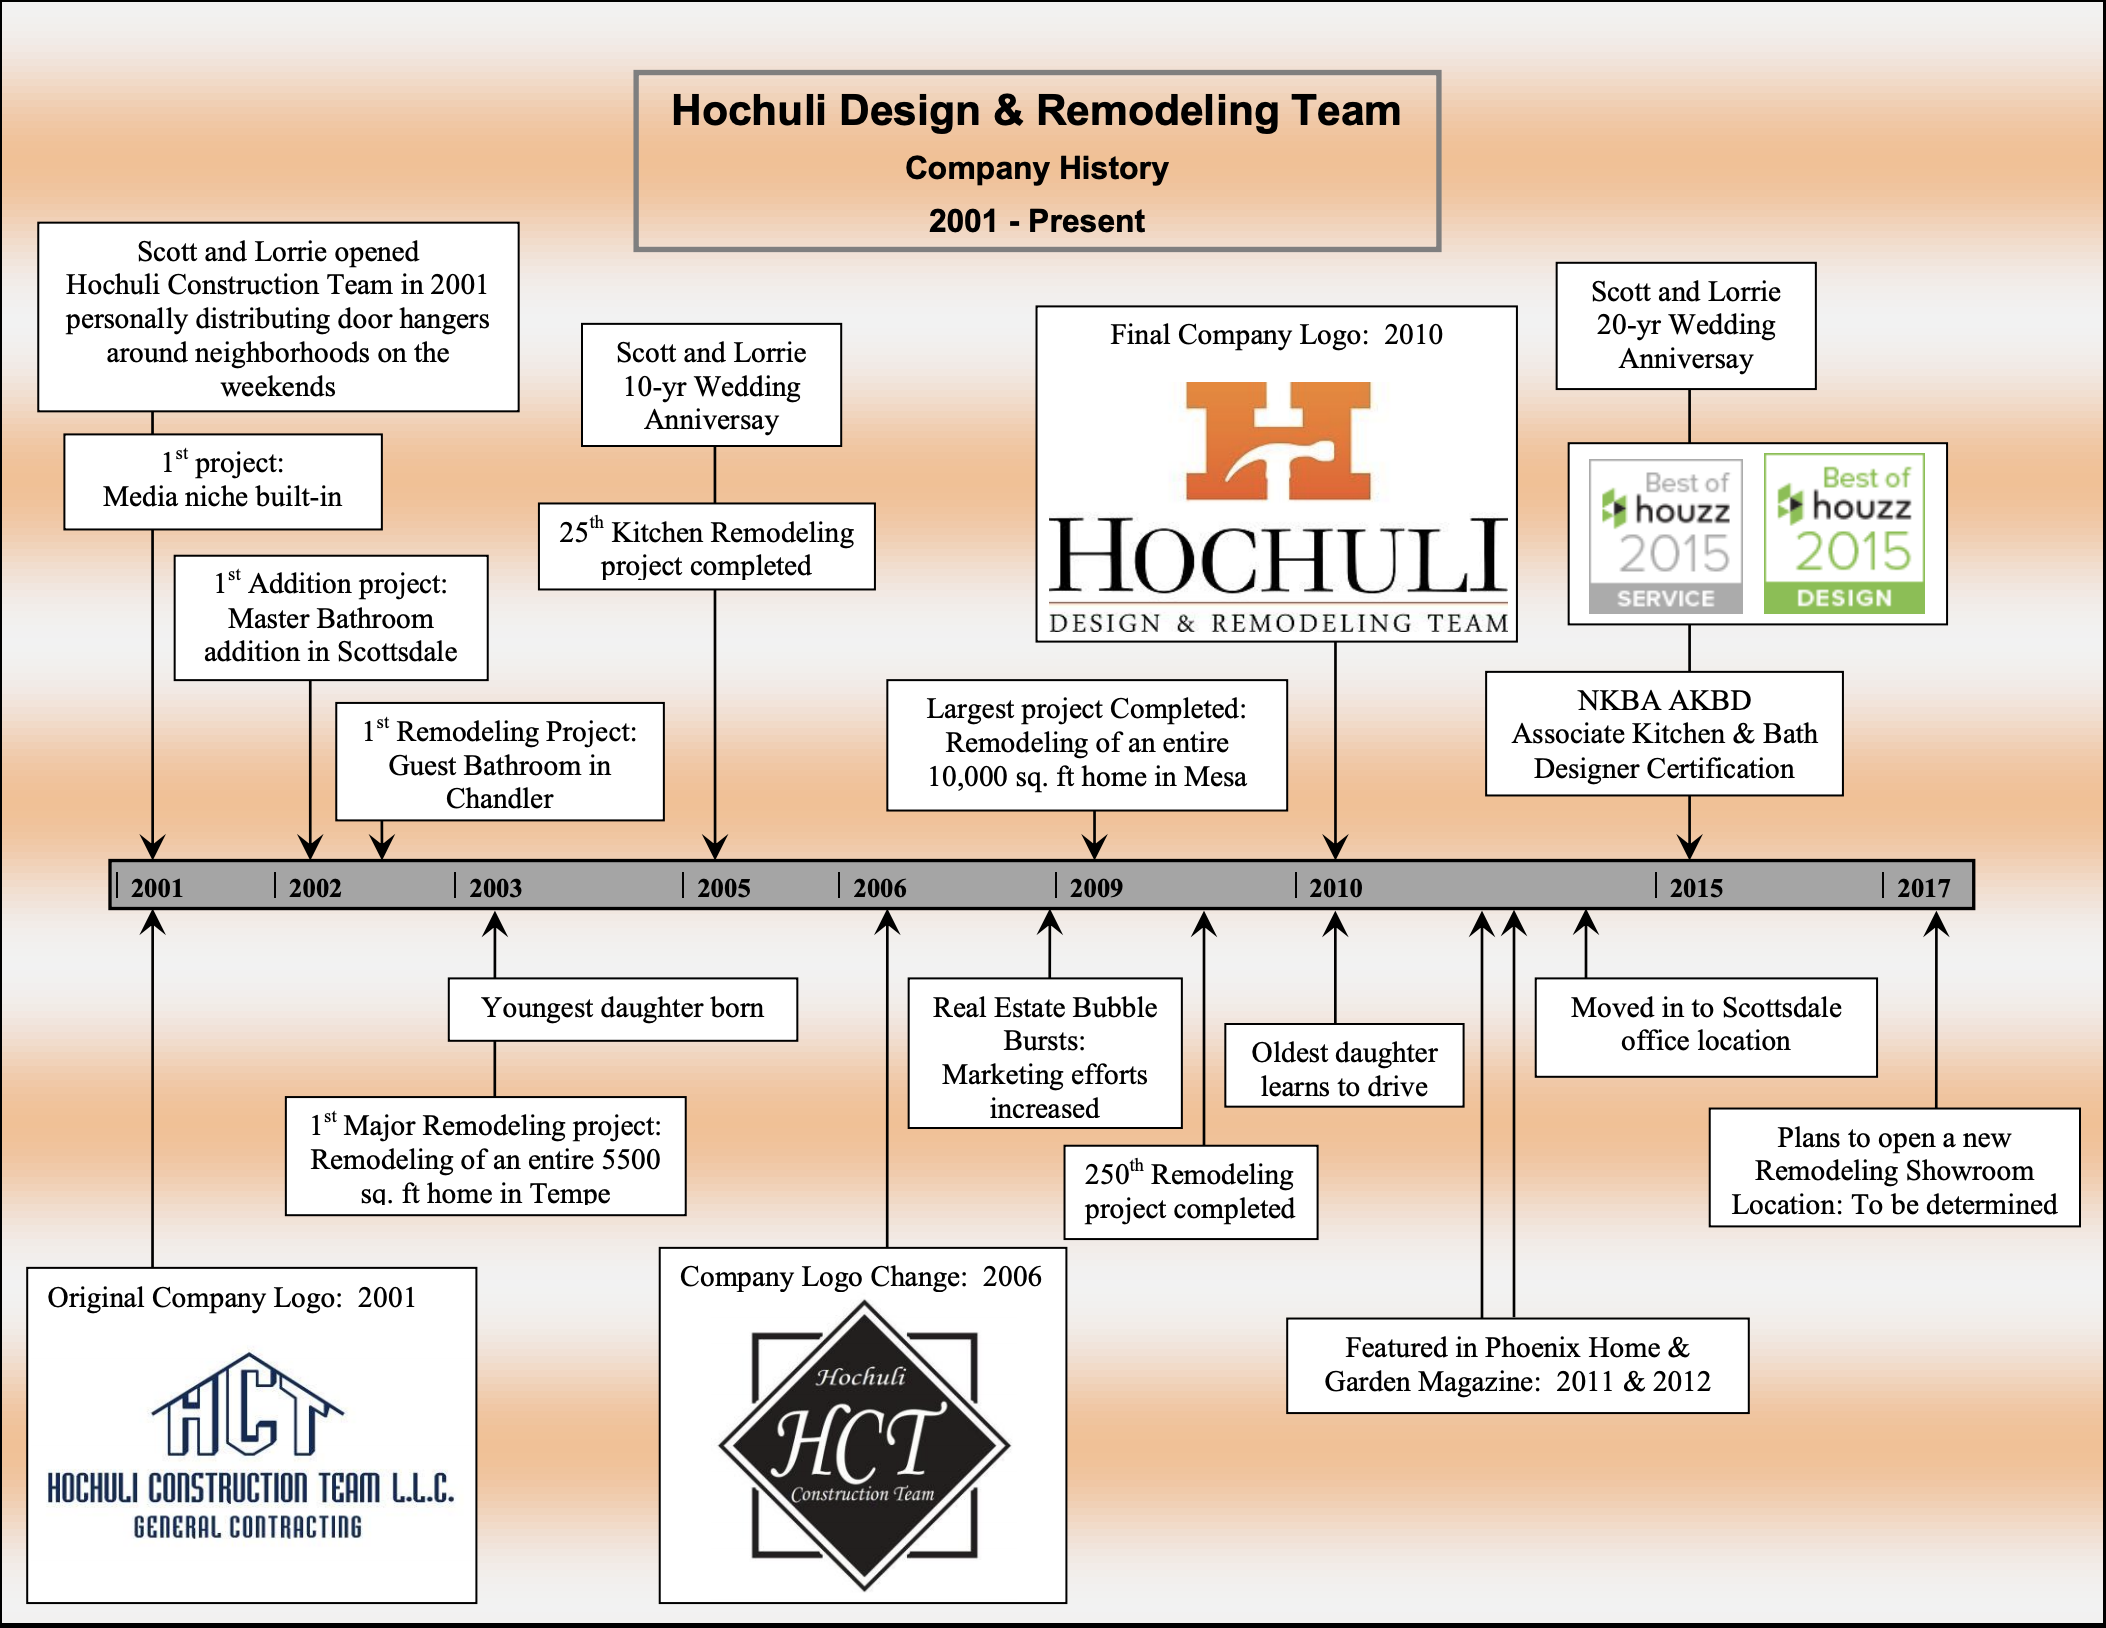 Hochuli Design and Remodeling Team History